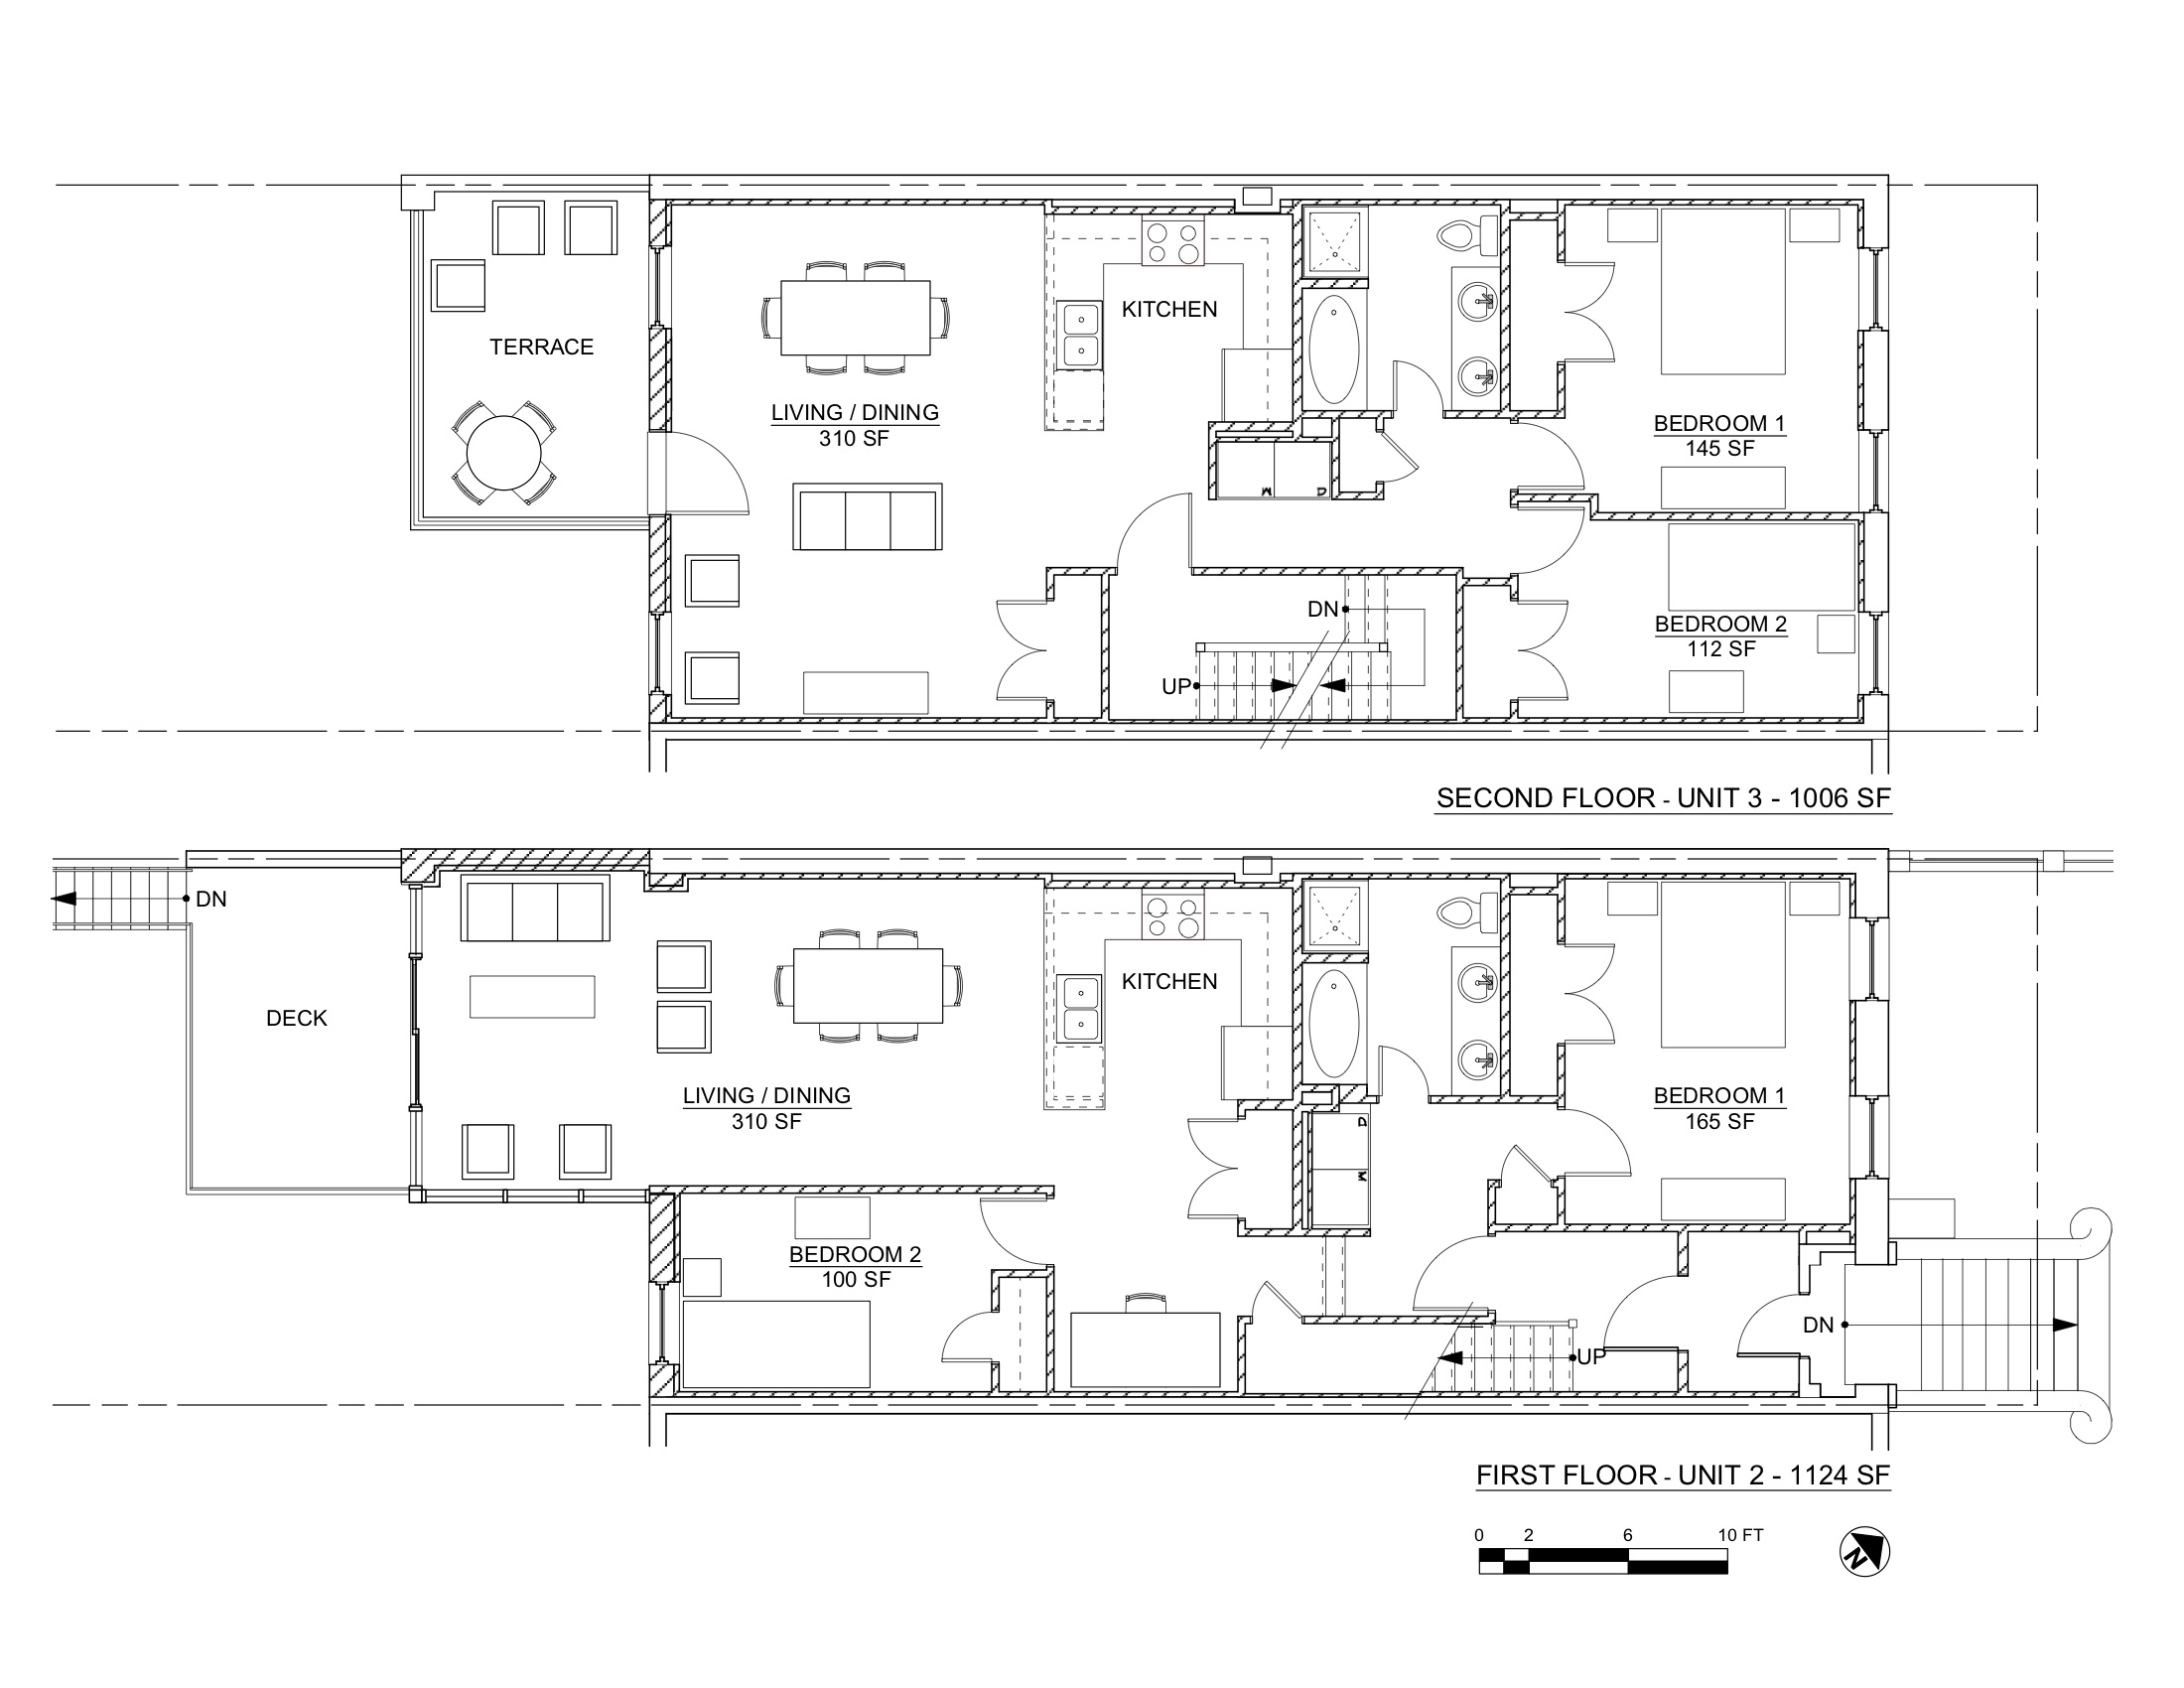 PACIFIC STREET PLANS 1ST & 2ND FLOORS